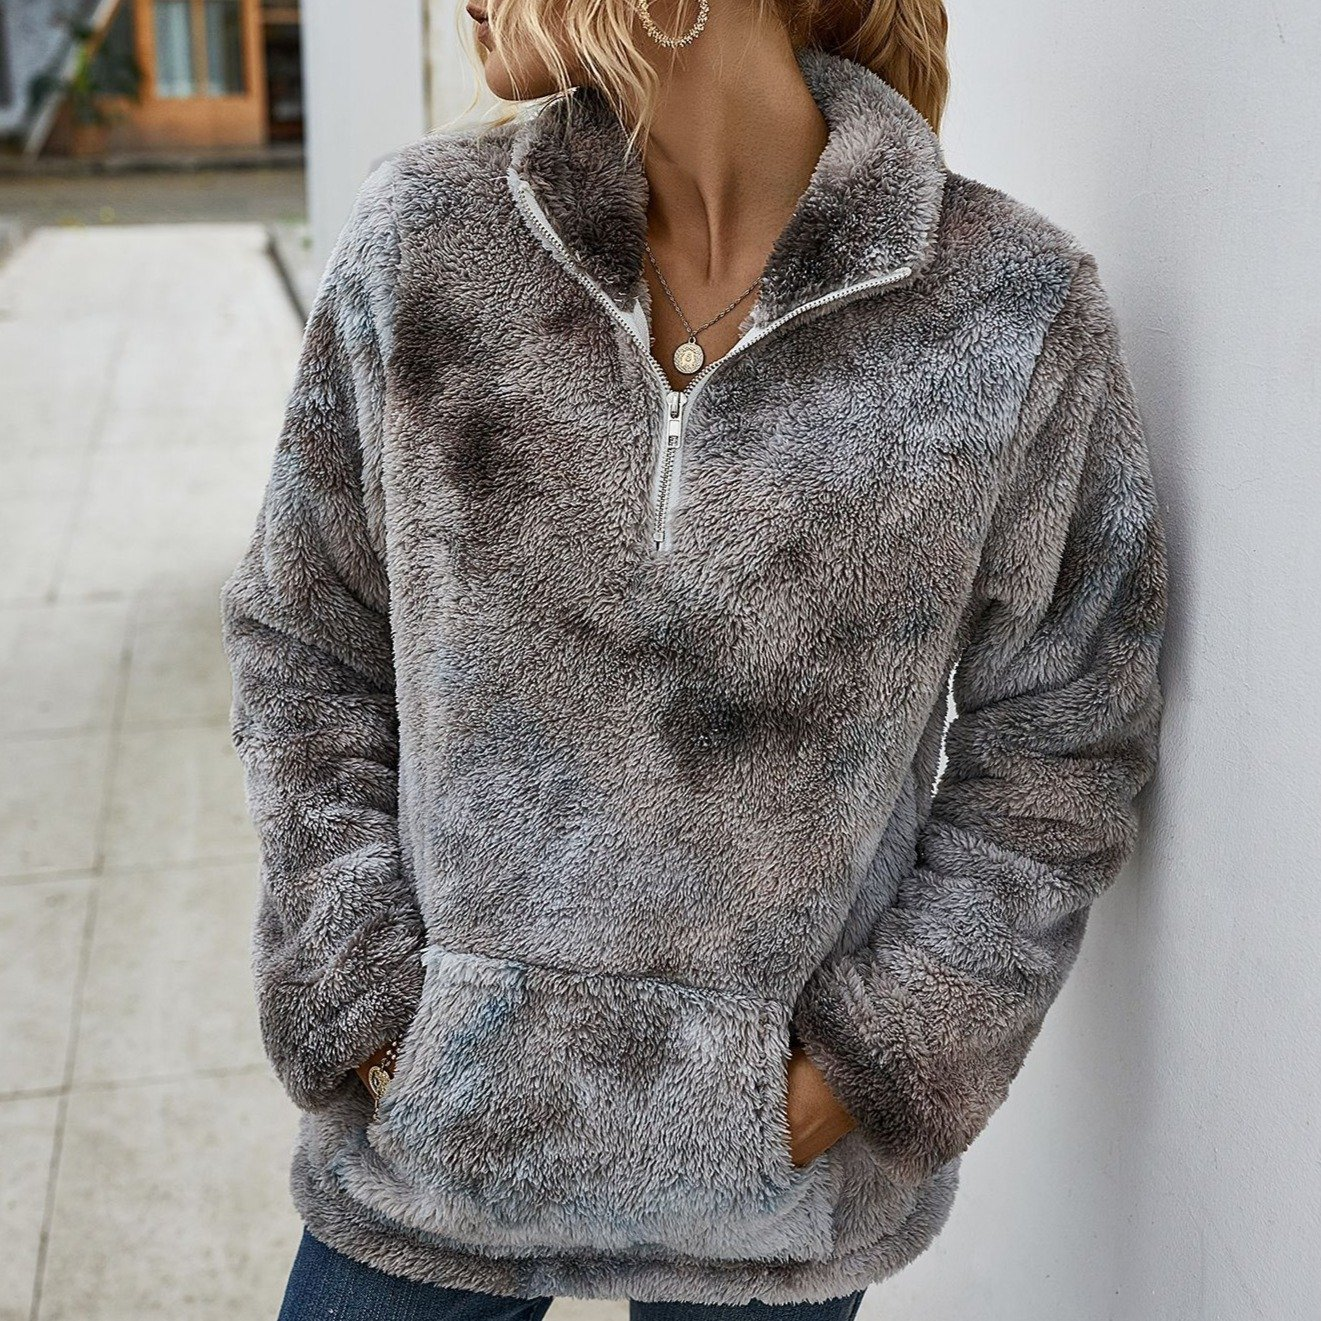 Fashion tie dye chunky sweater fuzzy polo sweater with pocket for winter